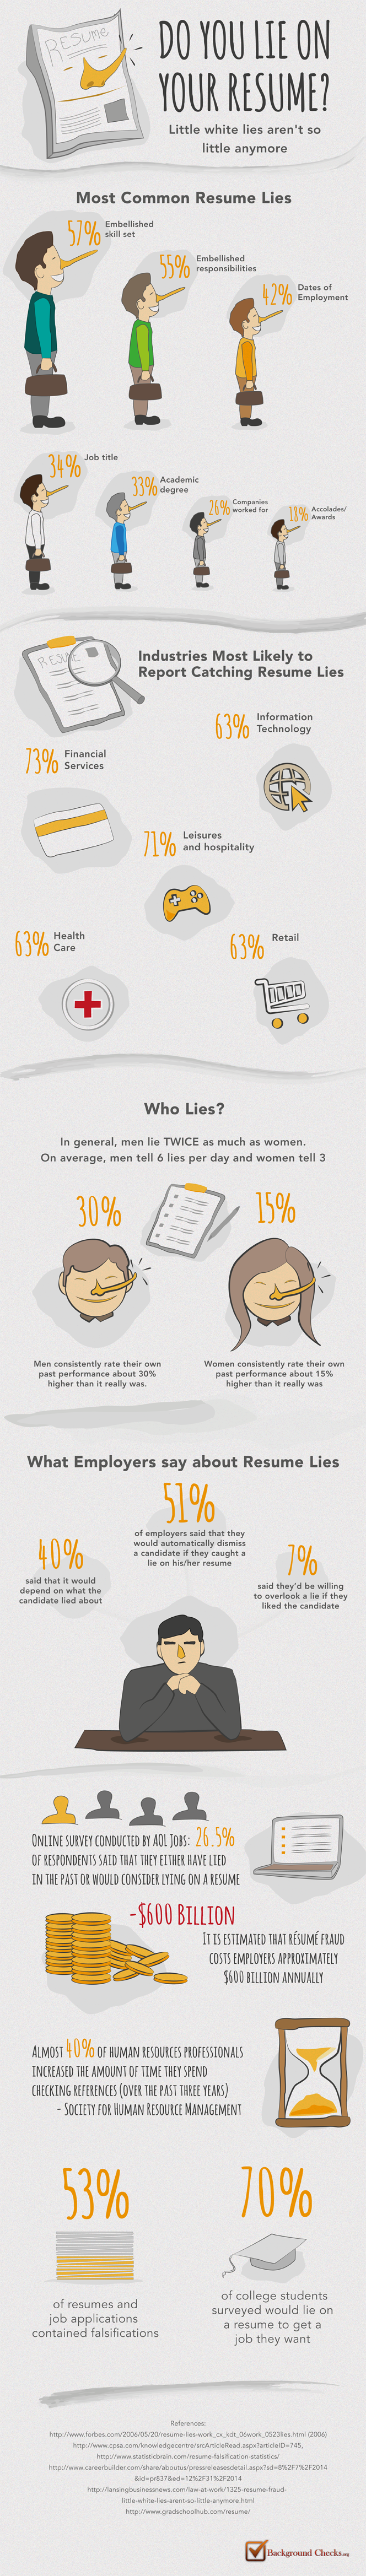 infographic do you lie on your resume